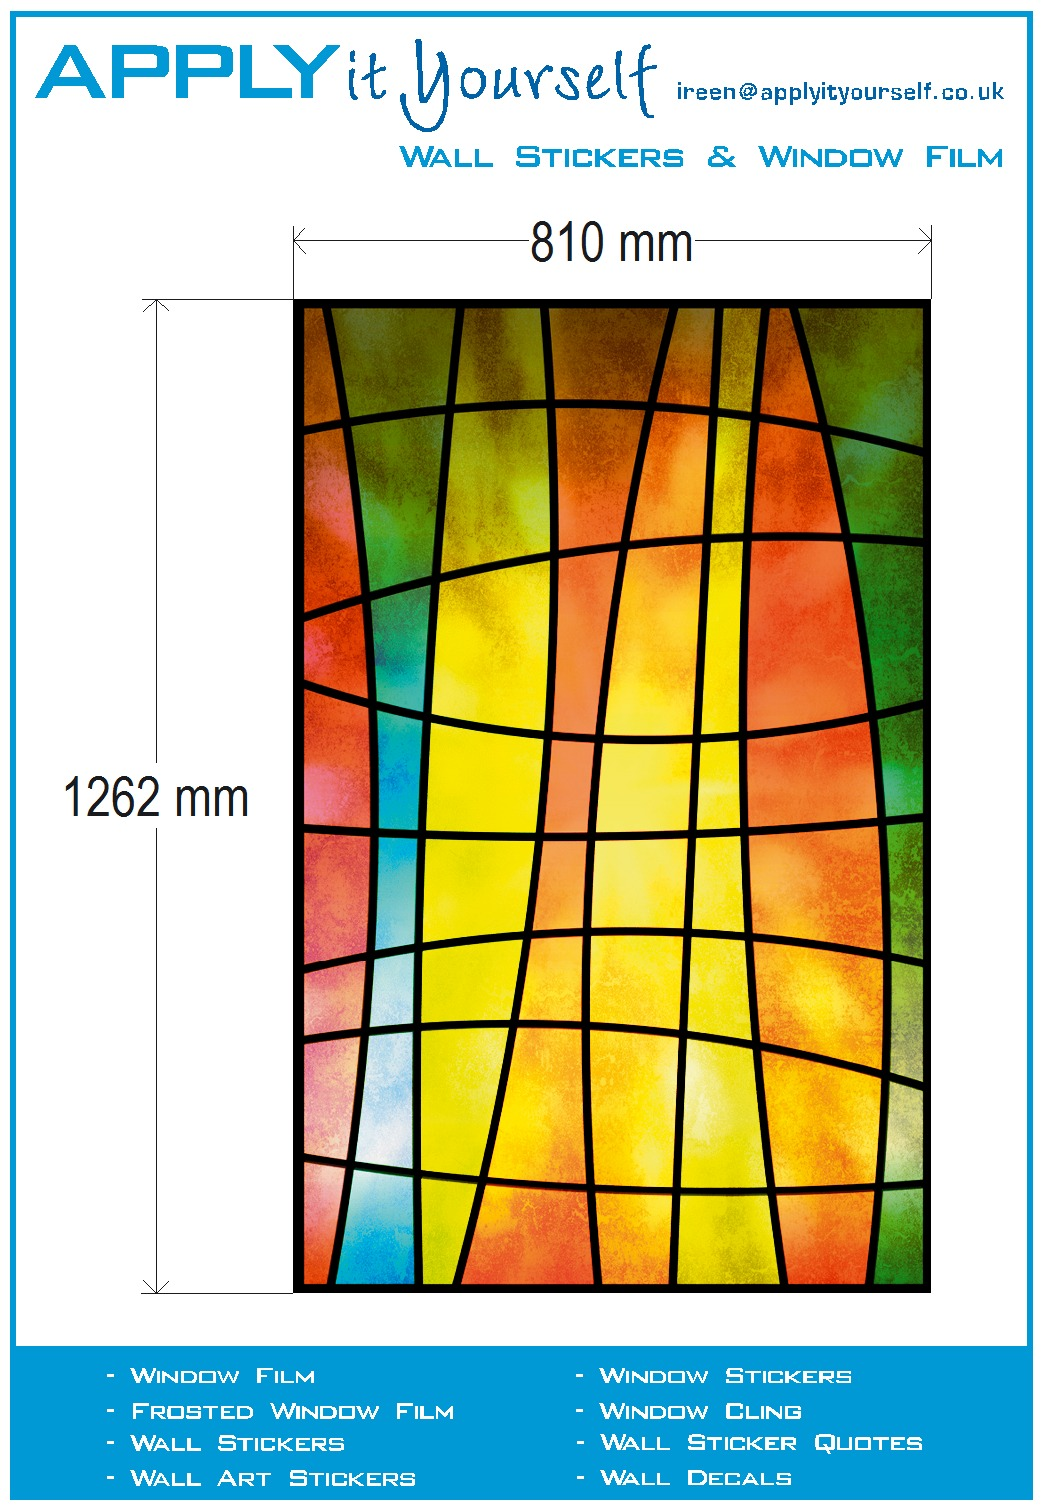 Window film transparent (3) stained glass, print, yellow, red, green, blue